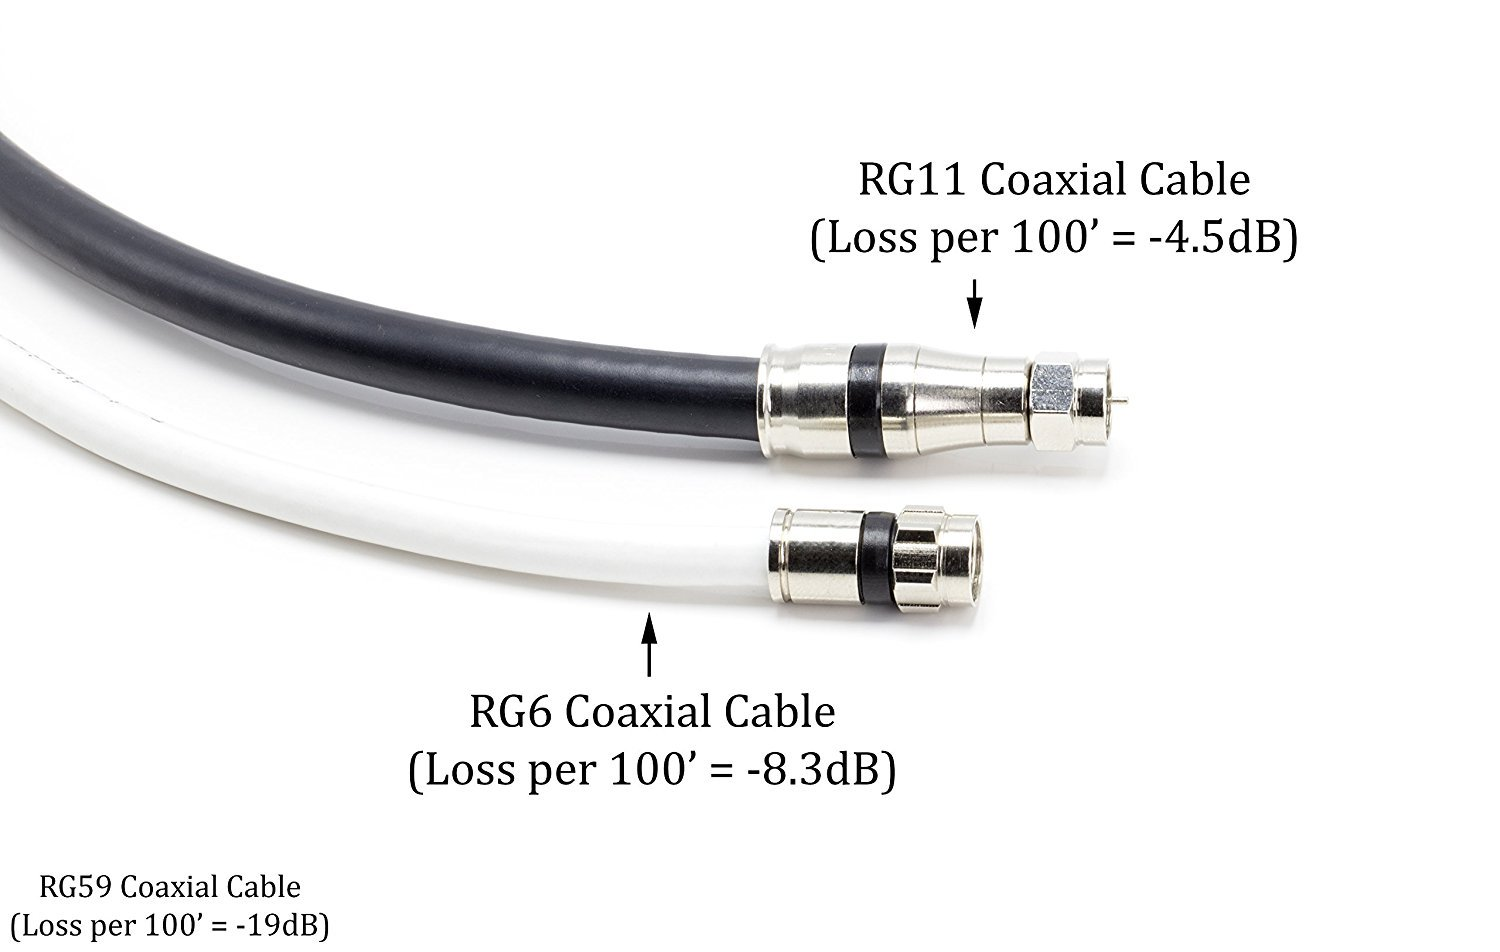 Amazon.com: THE CIMPLE CO - 150 Foot RG-11 Coaxial Cable, Made in The USA | F Type Cable High Definition with RG11 Coax Compression Connectors – (Black): ...